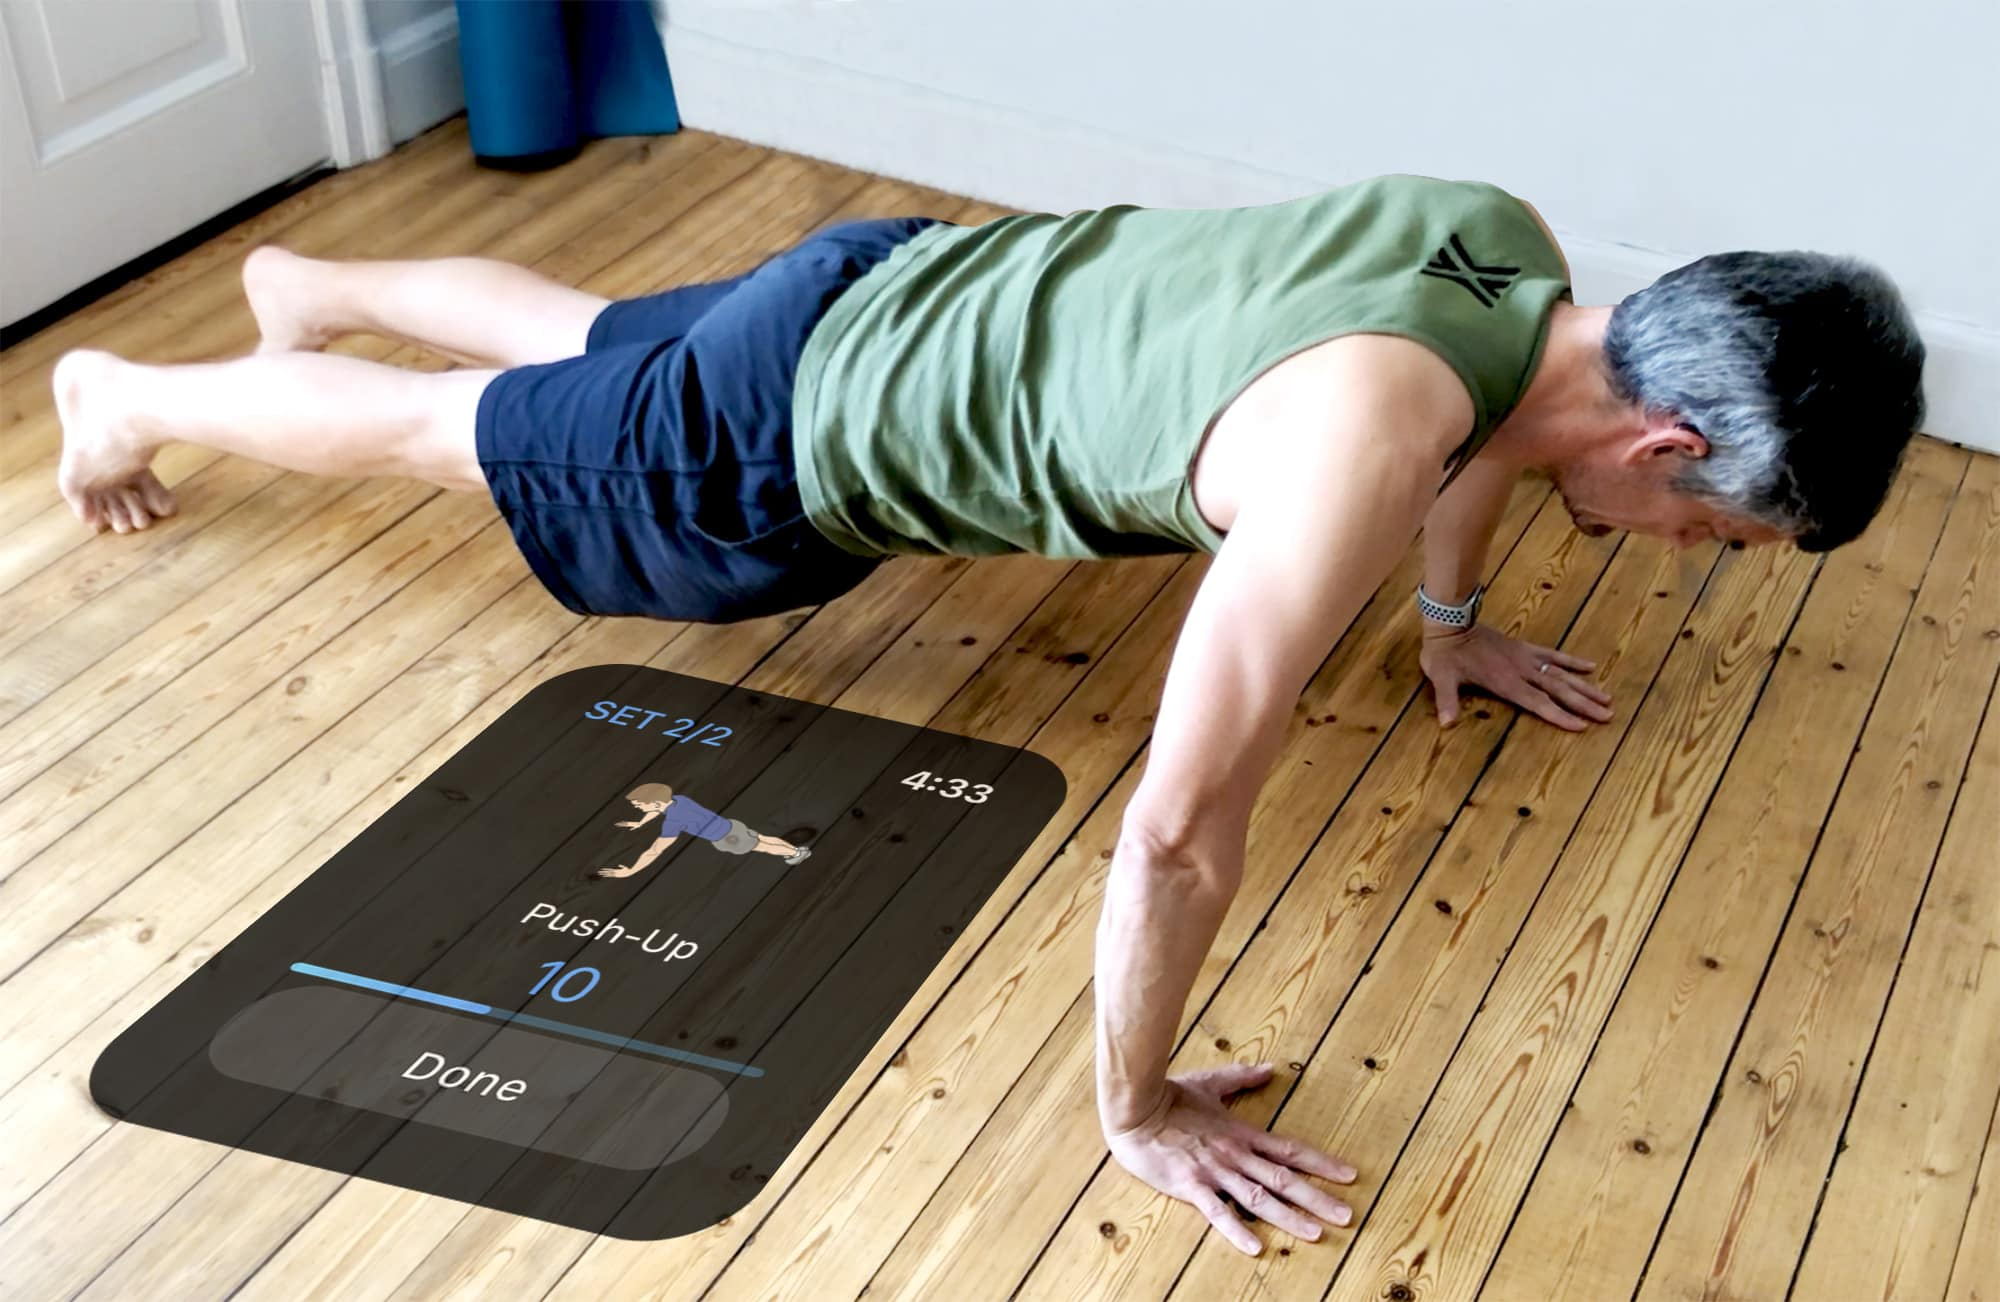 Cómo perfeccionar tus flexiones con Apple Watch y iPhone